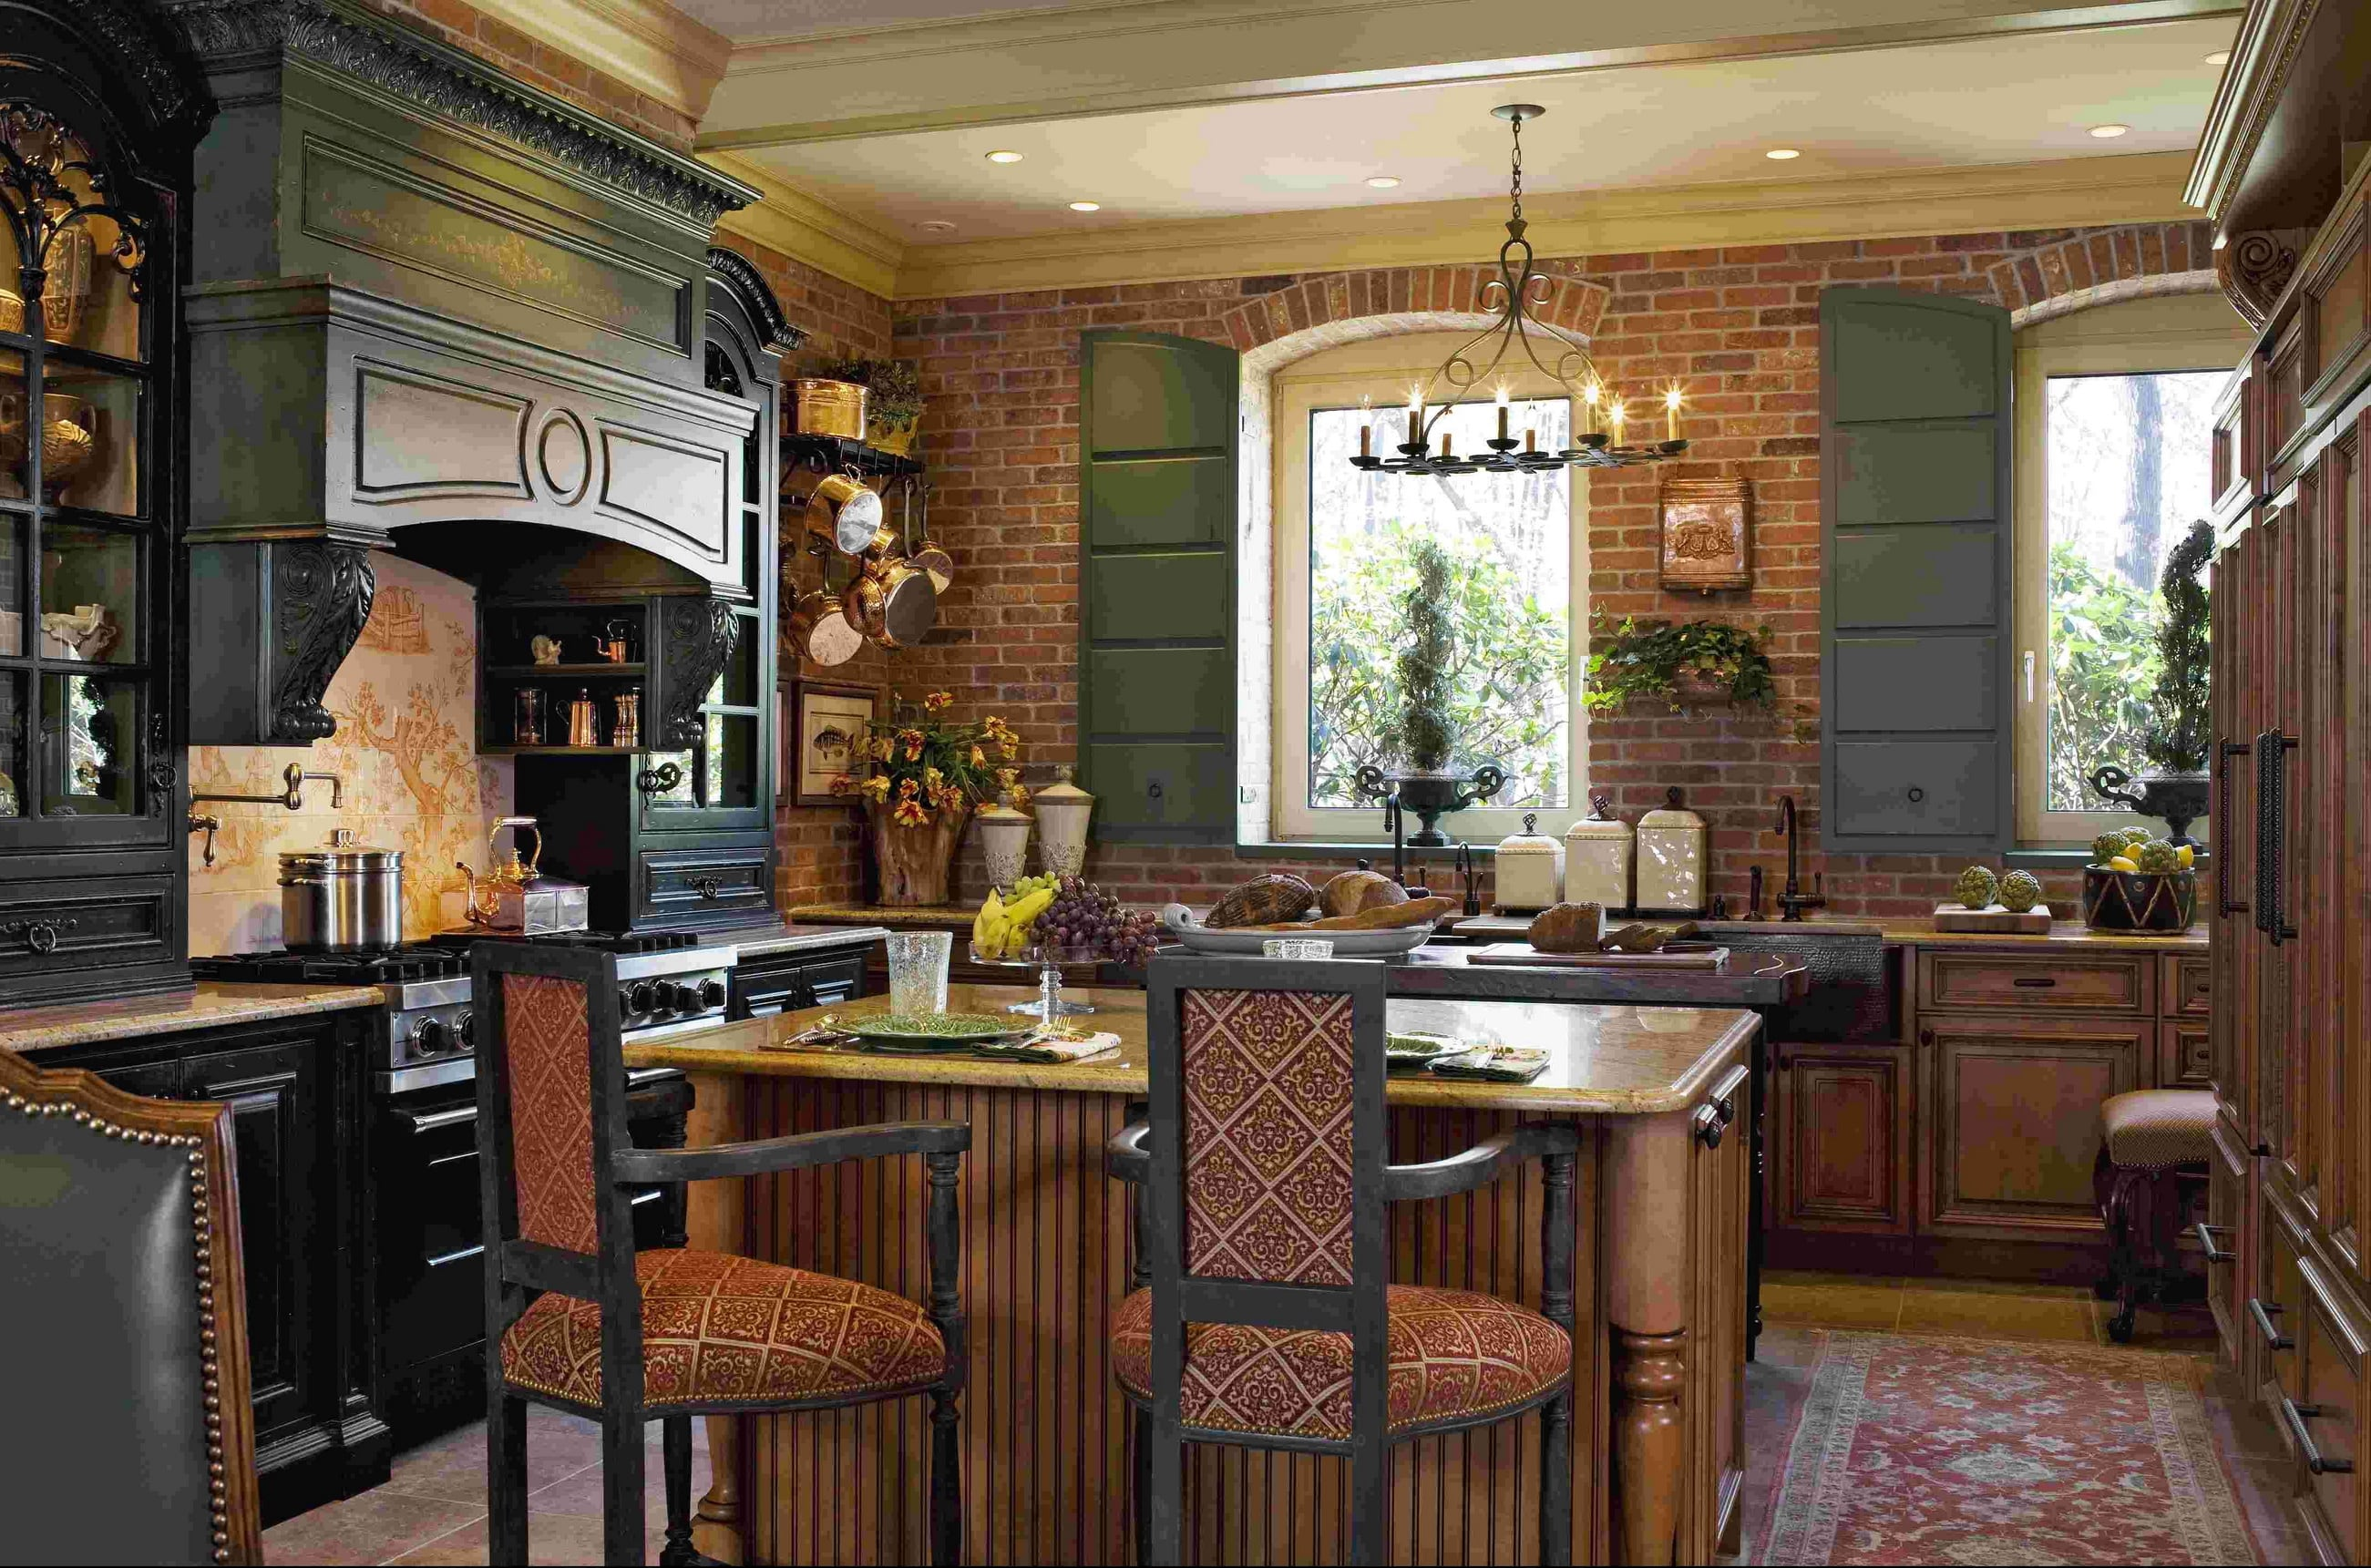 luxury-french-kitchen-decor-with-bold-painting-color-and-classic-kitchen-furniture